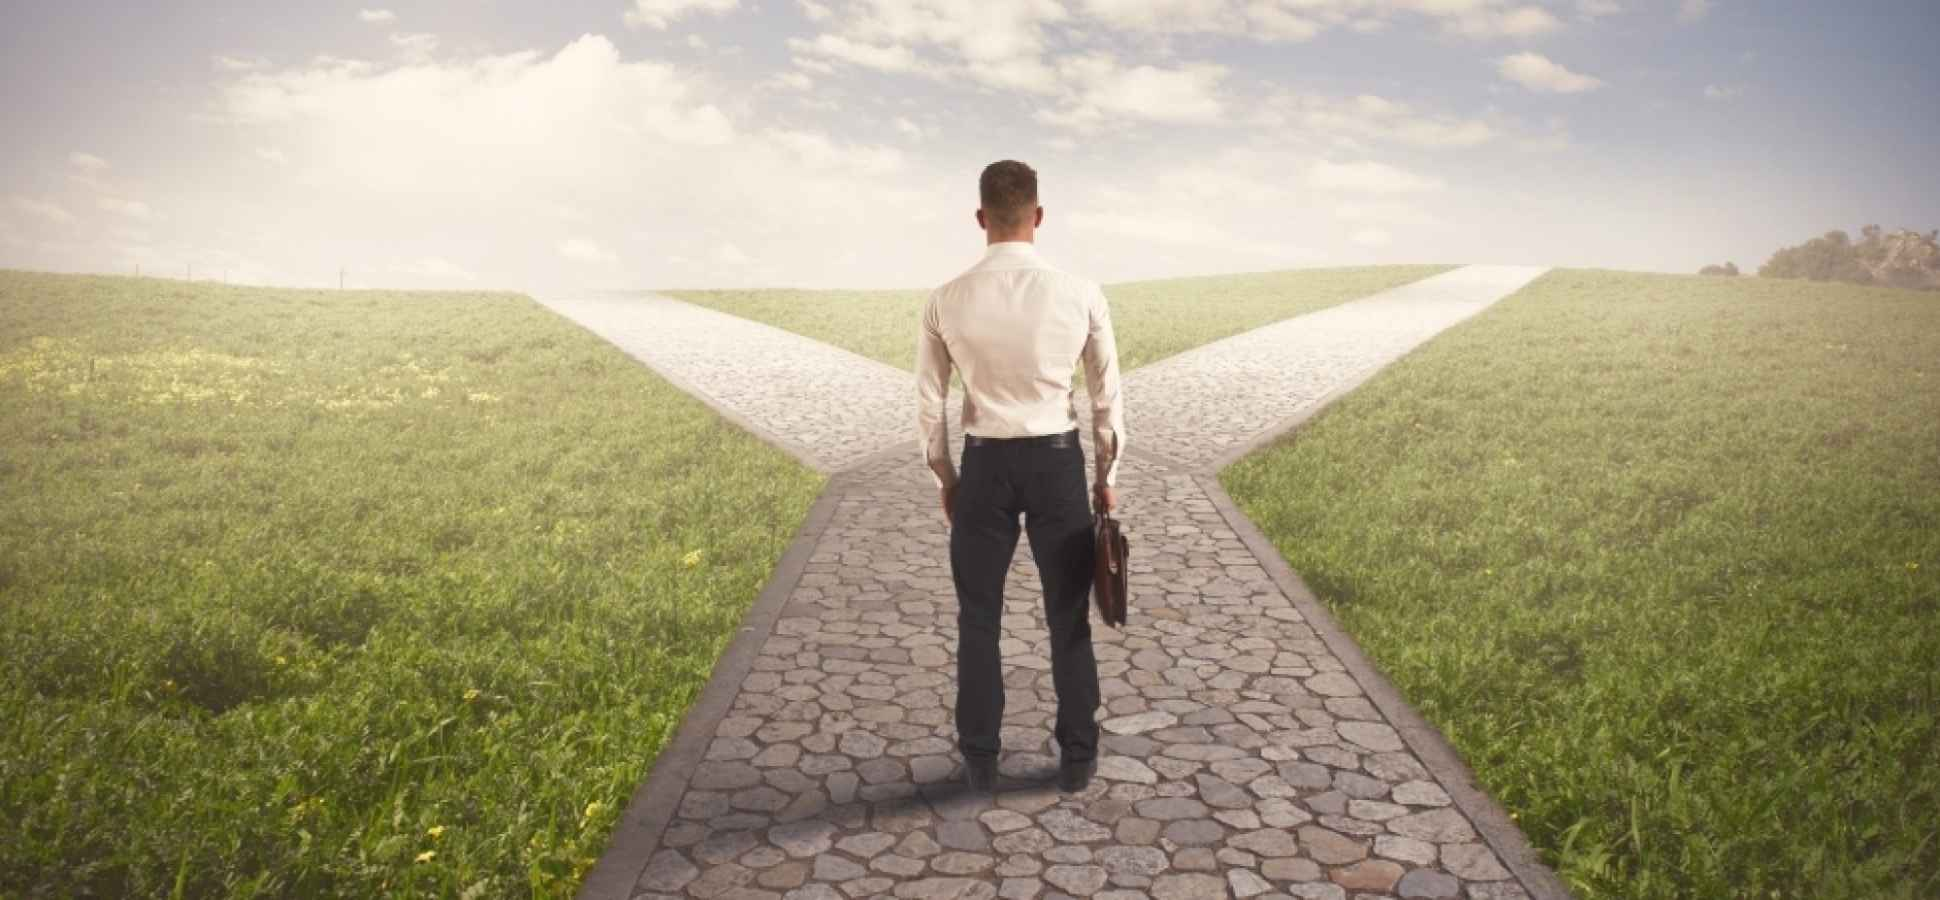 You Think You Have Free Will? Science Says Think Again